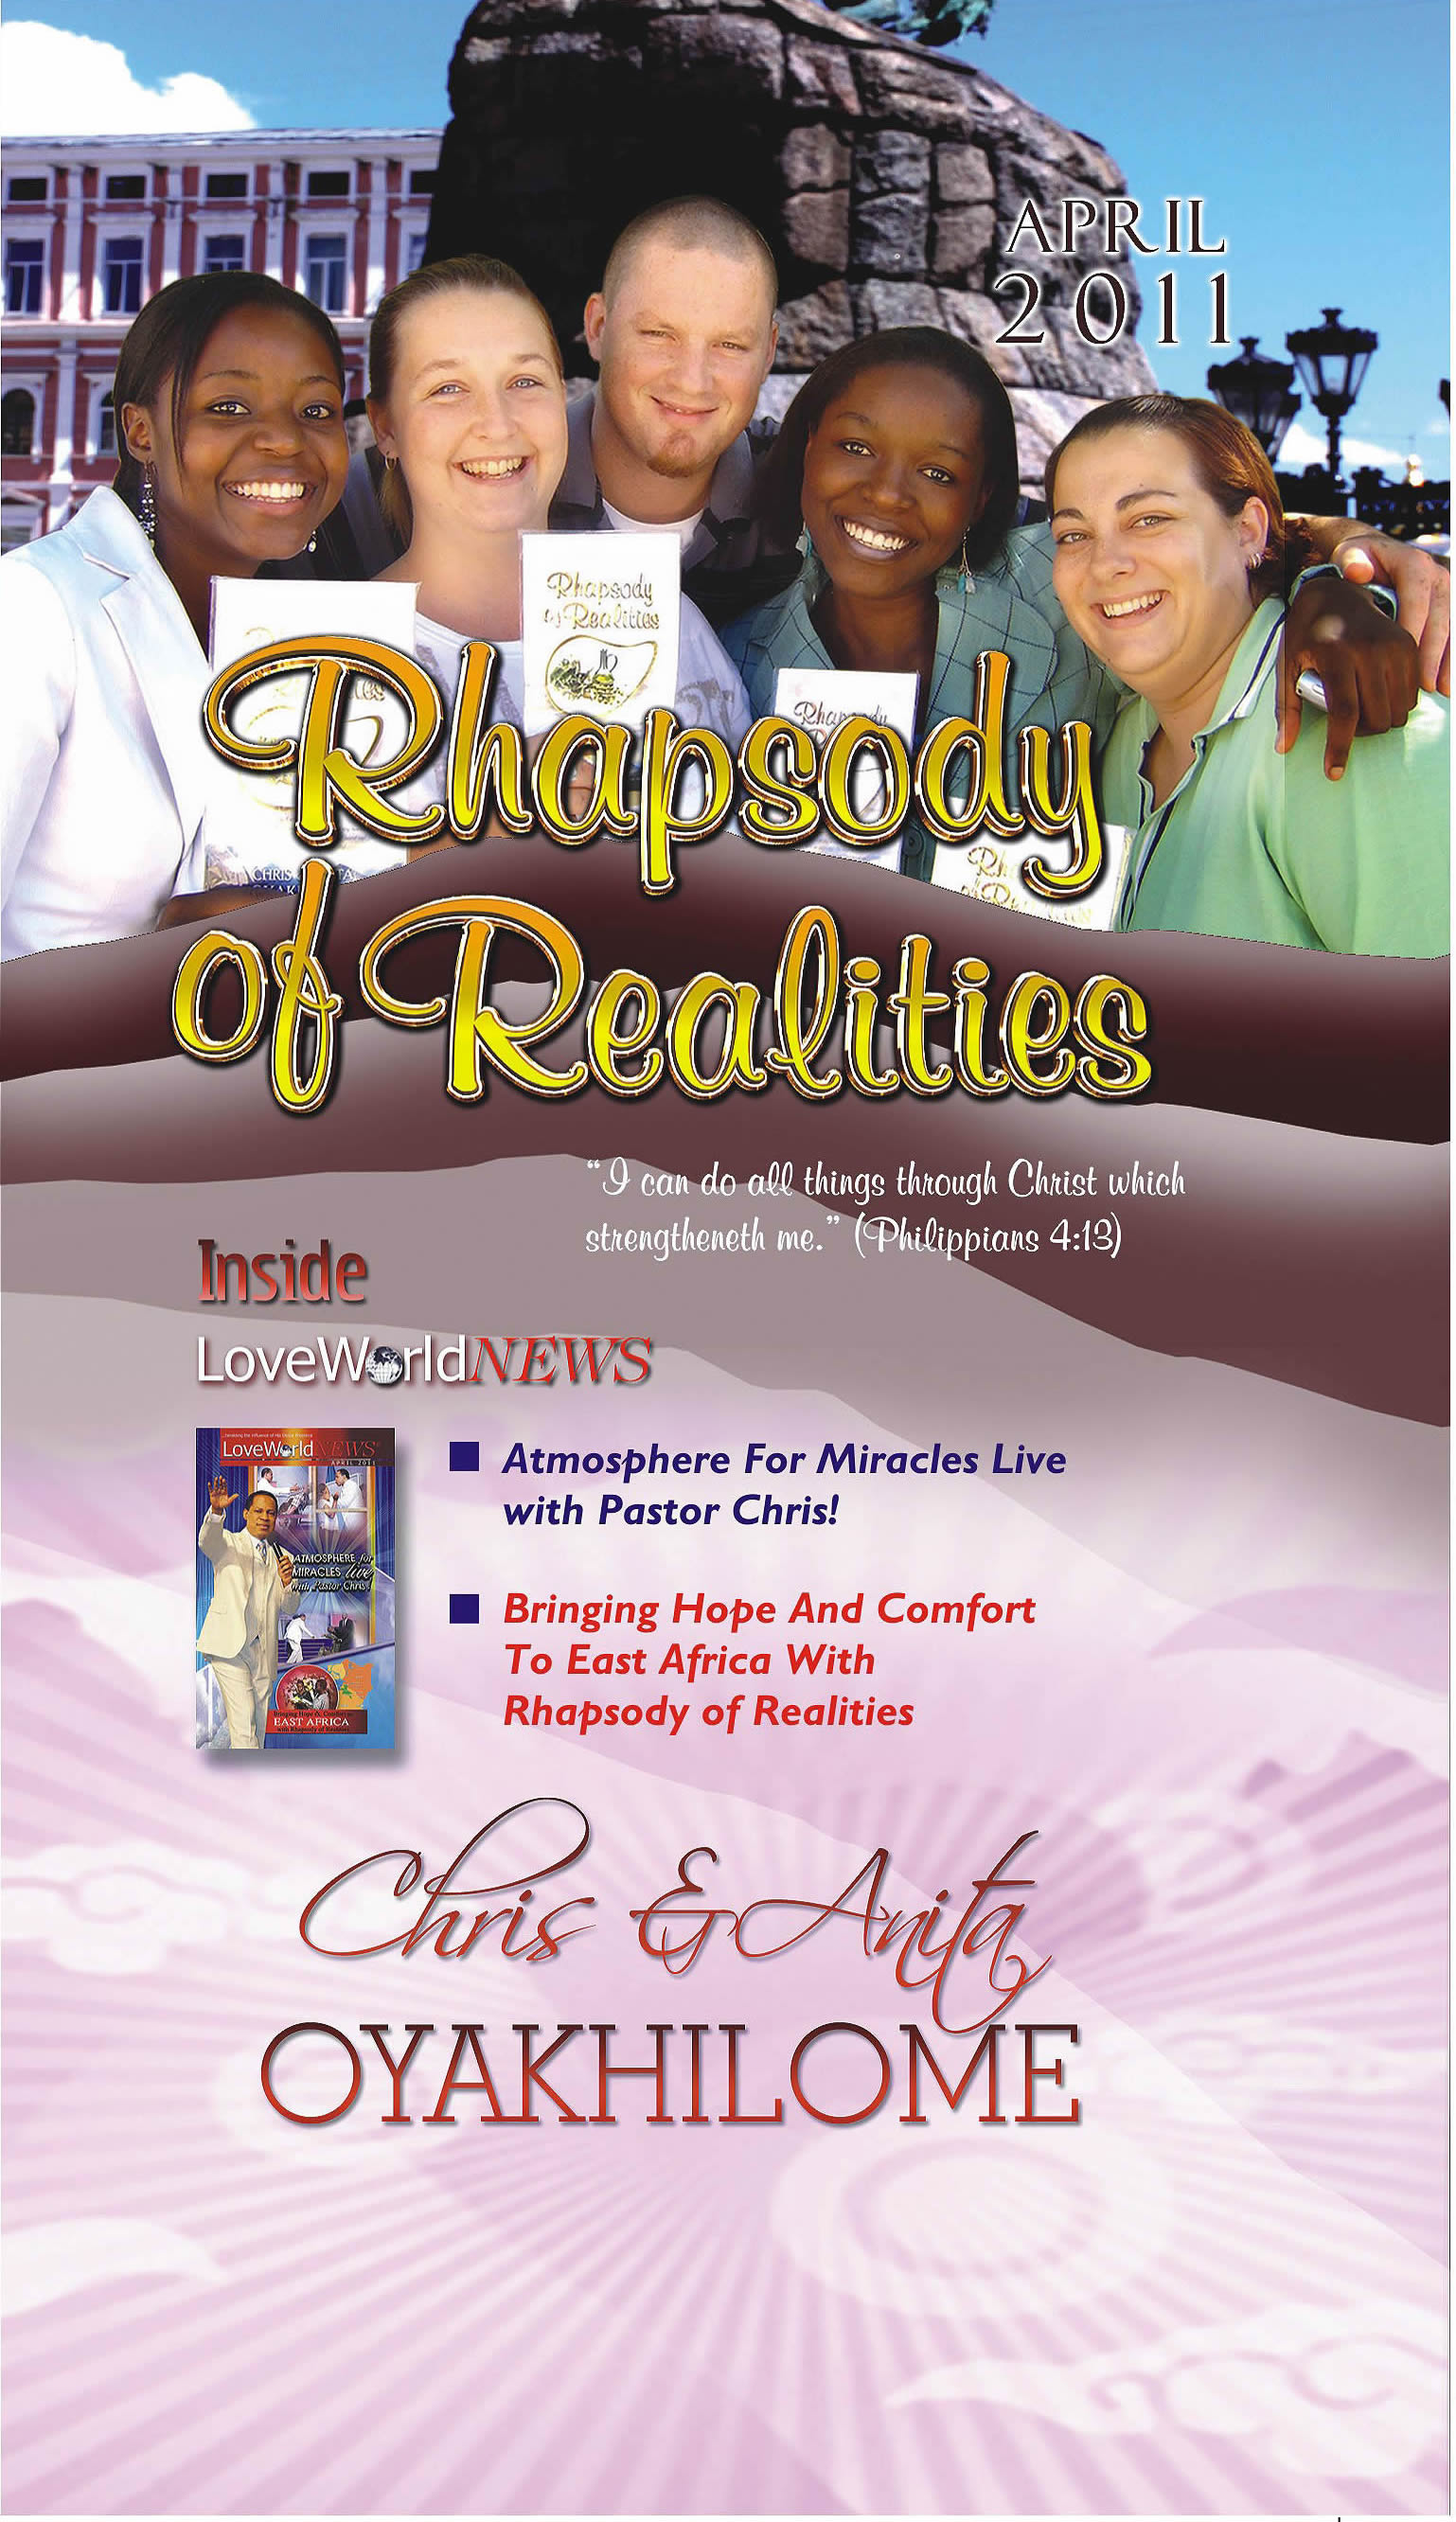 Pastor Chris and Anita Oyakhilome - Rhapsody Of Realities April 2011 Edition